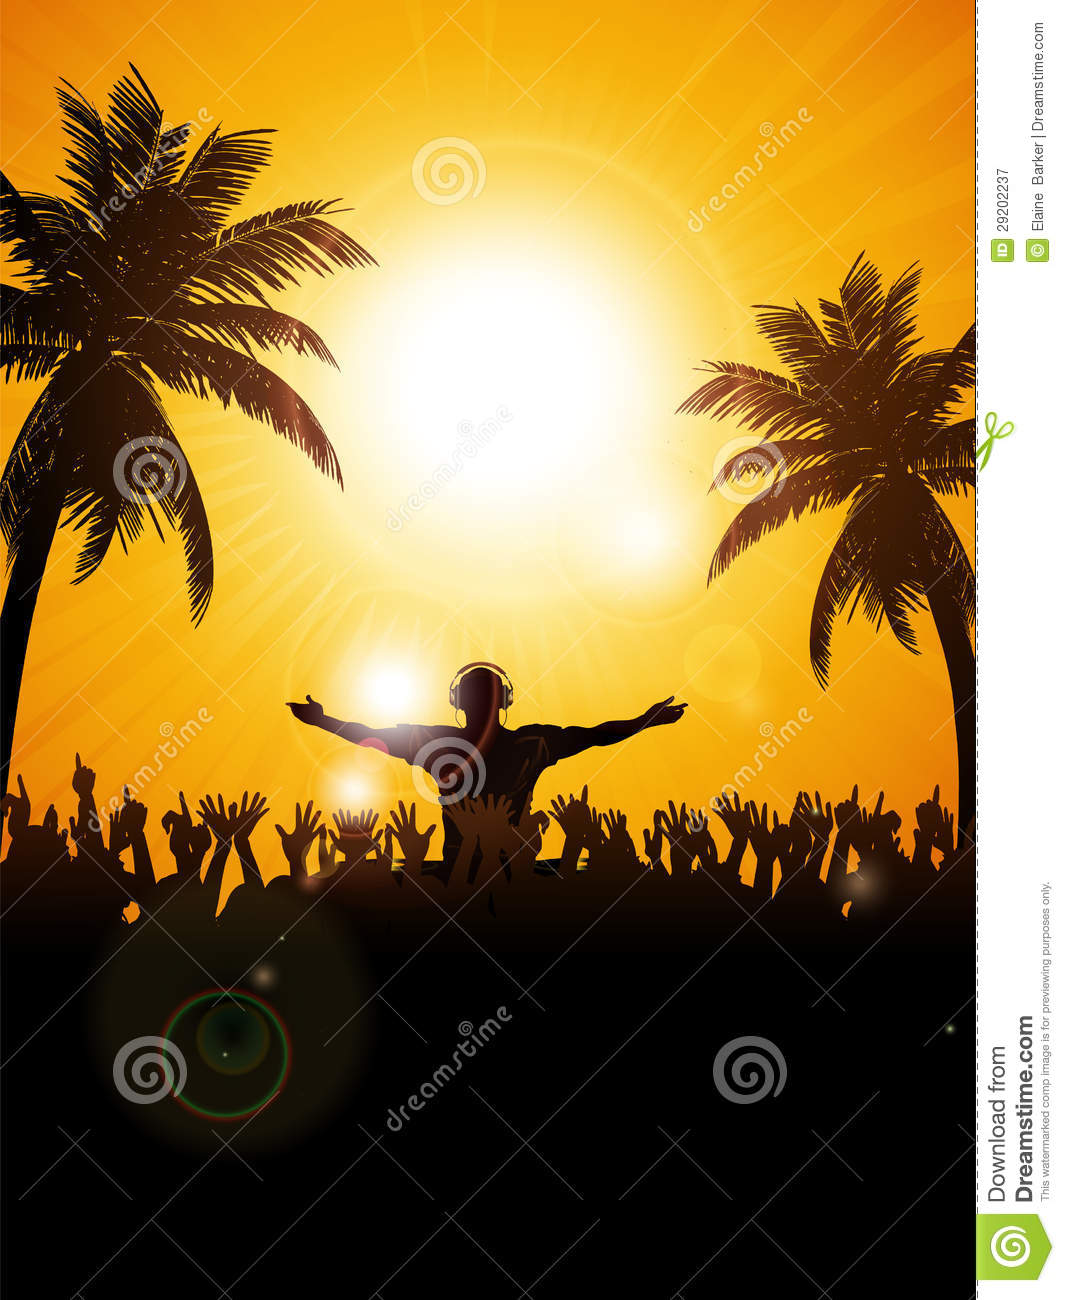 Summer Festival With Dj And Palm Trees Royalty Free Stock Photography ...